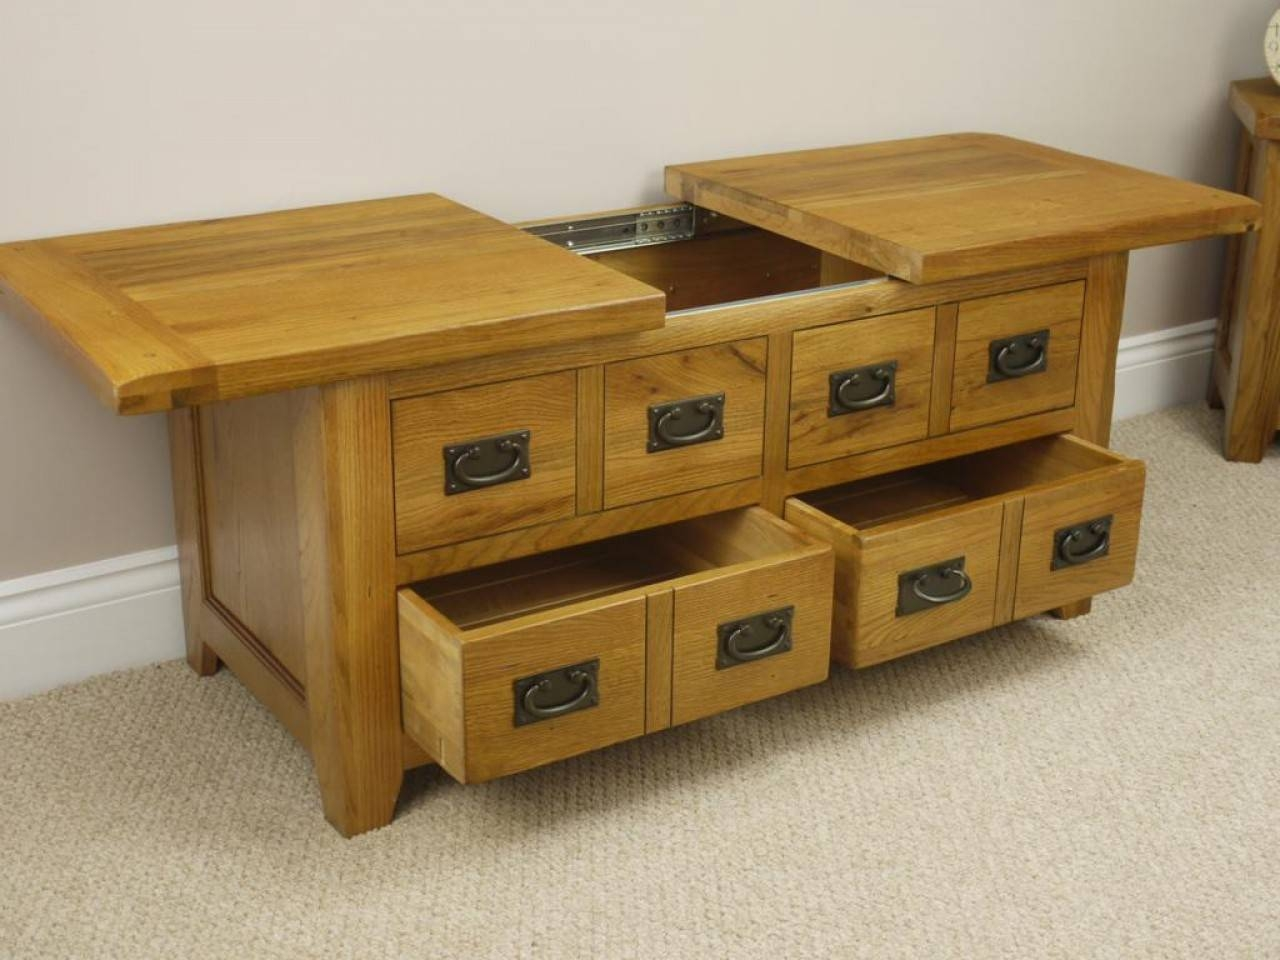 Large Square Oak Coffee Table With Storage | Coffee Tables Decoration Intended For Square Storage Coffee Tables (View 21 of 30)